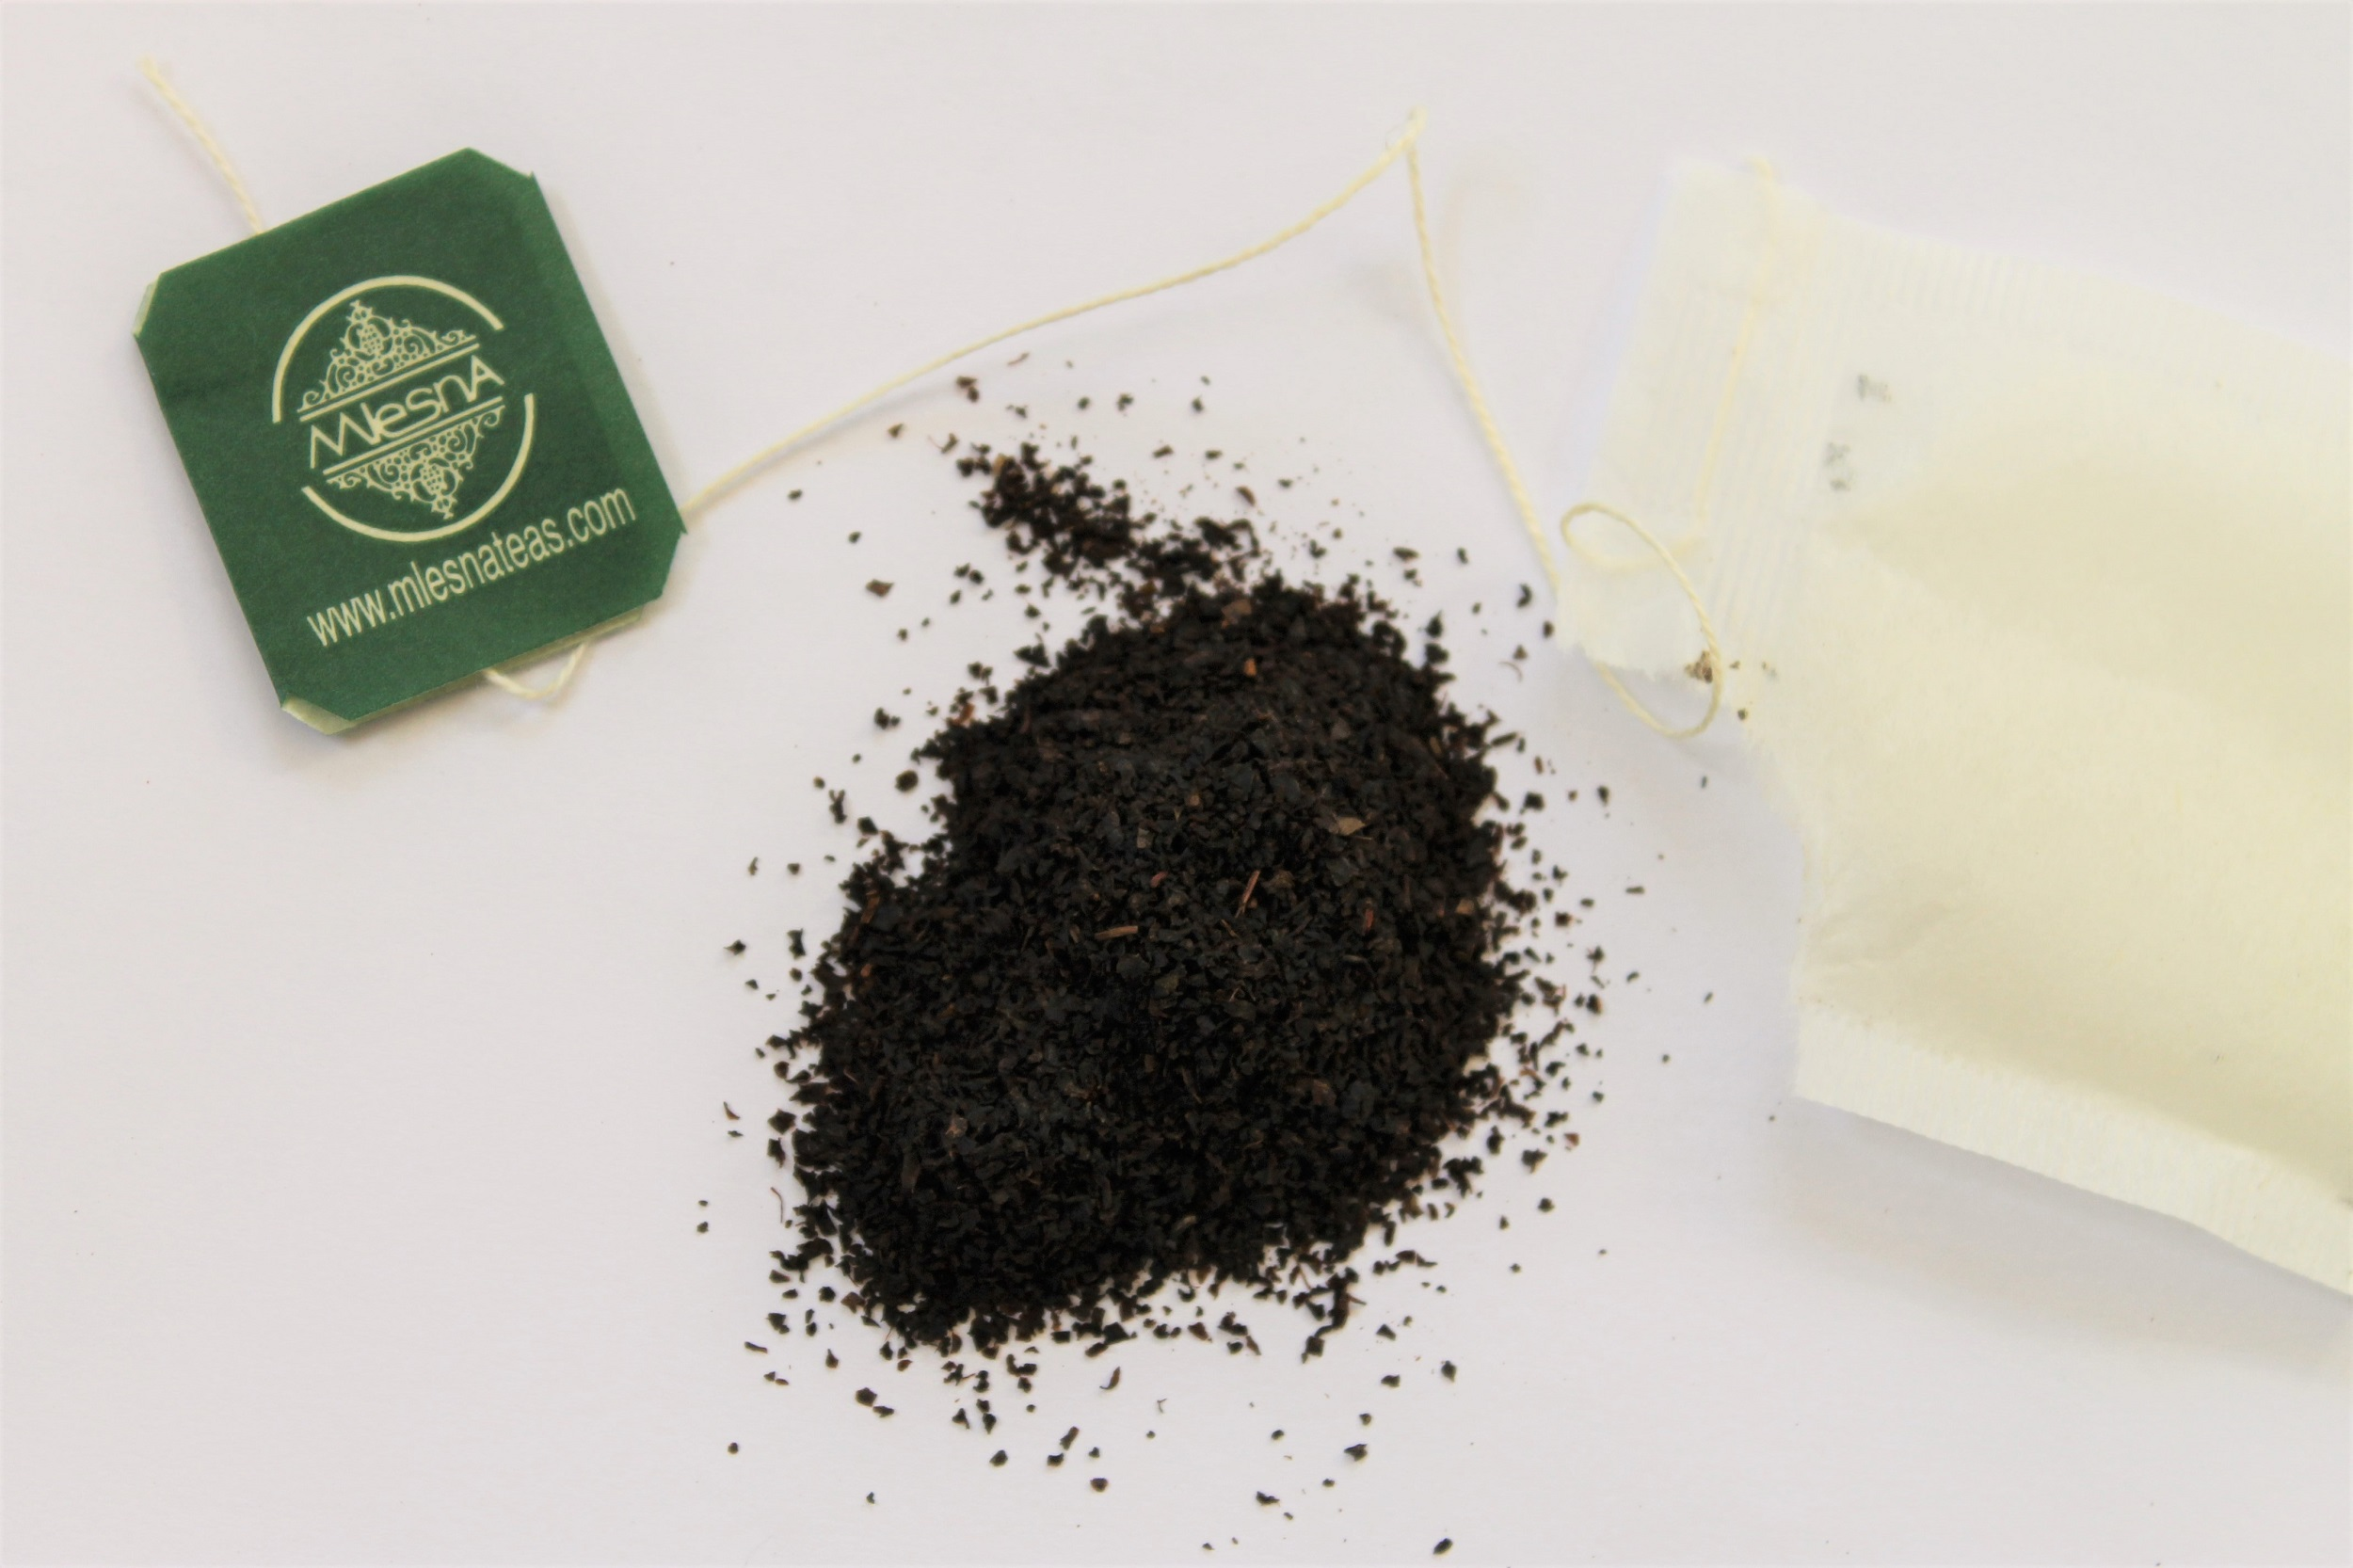 mlesna ceylon black tea with cinnamon spice pieces